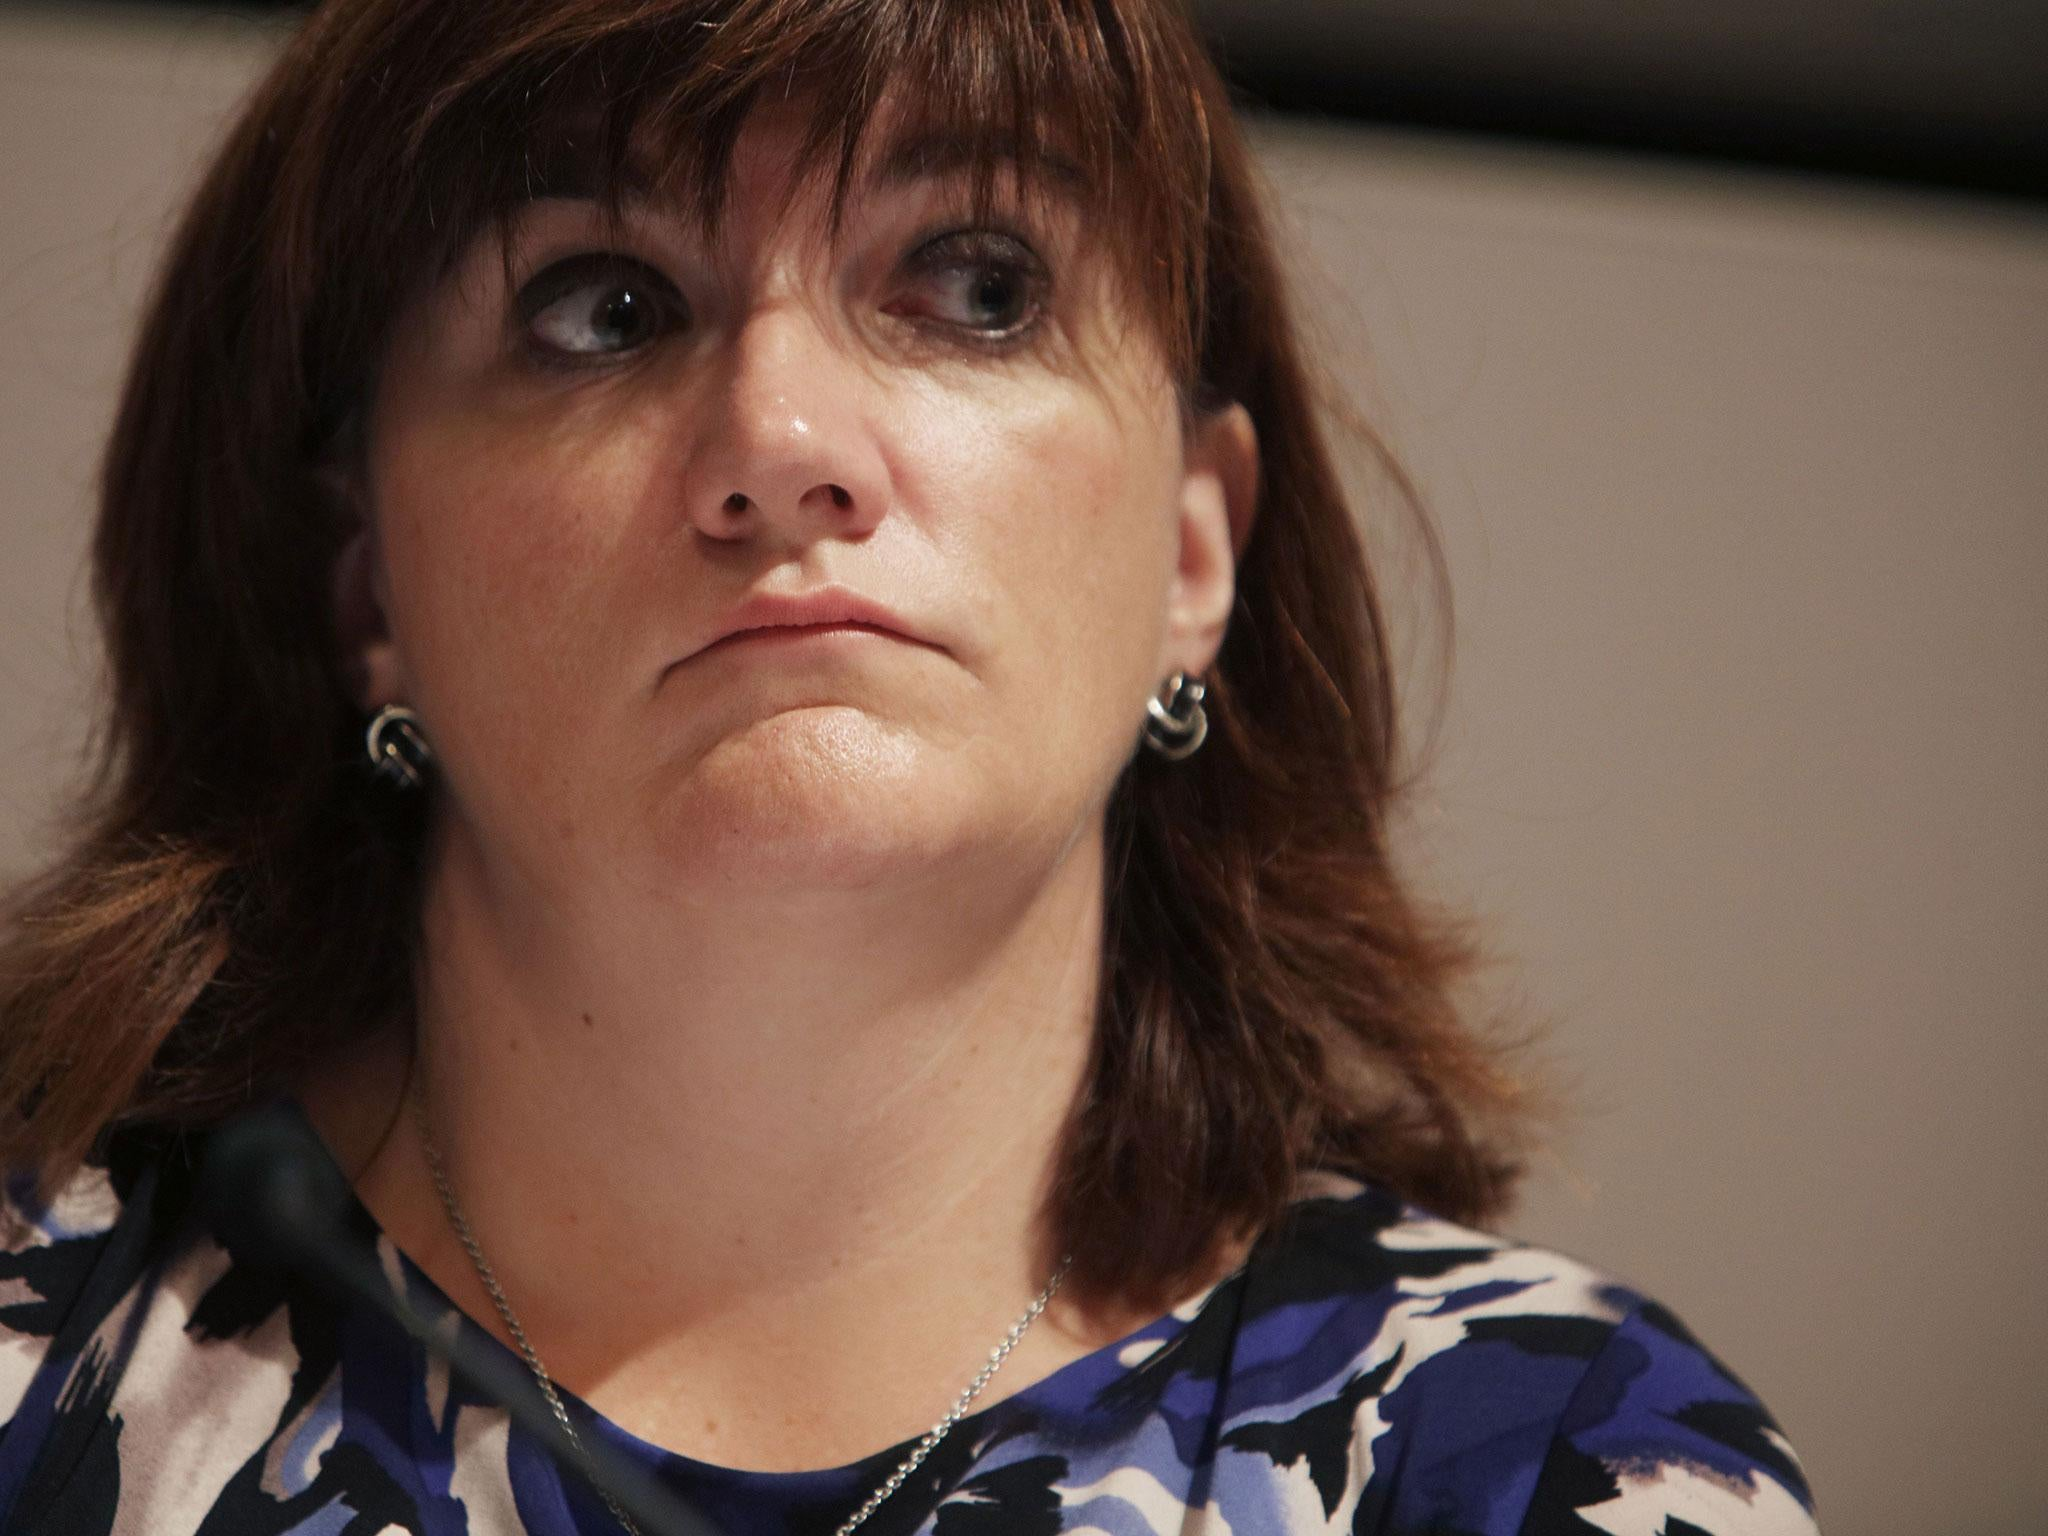 British politics 'is going badly wrong' as MPs face abuse and death threats, warns Nicky Morgan